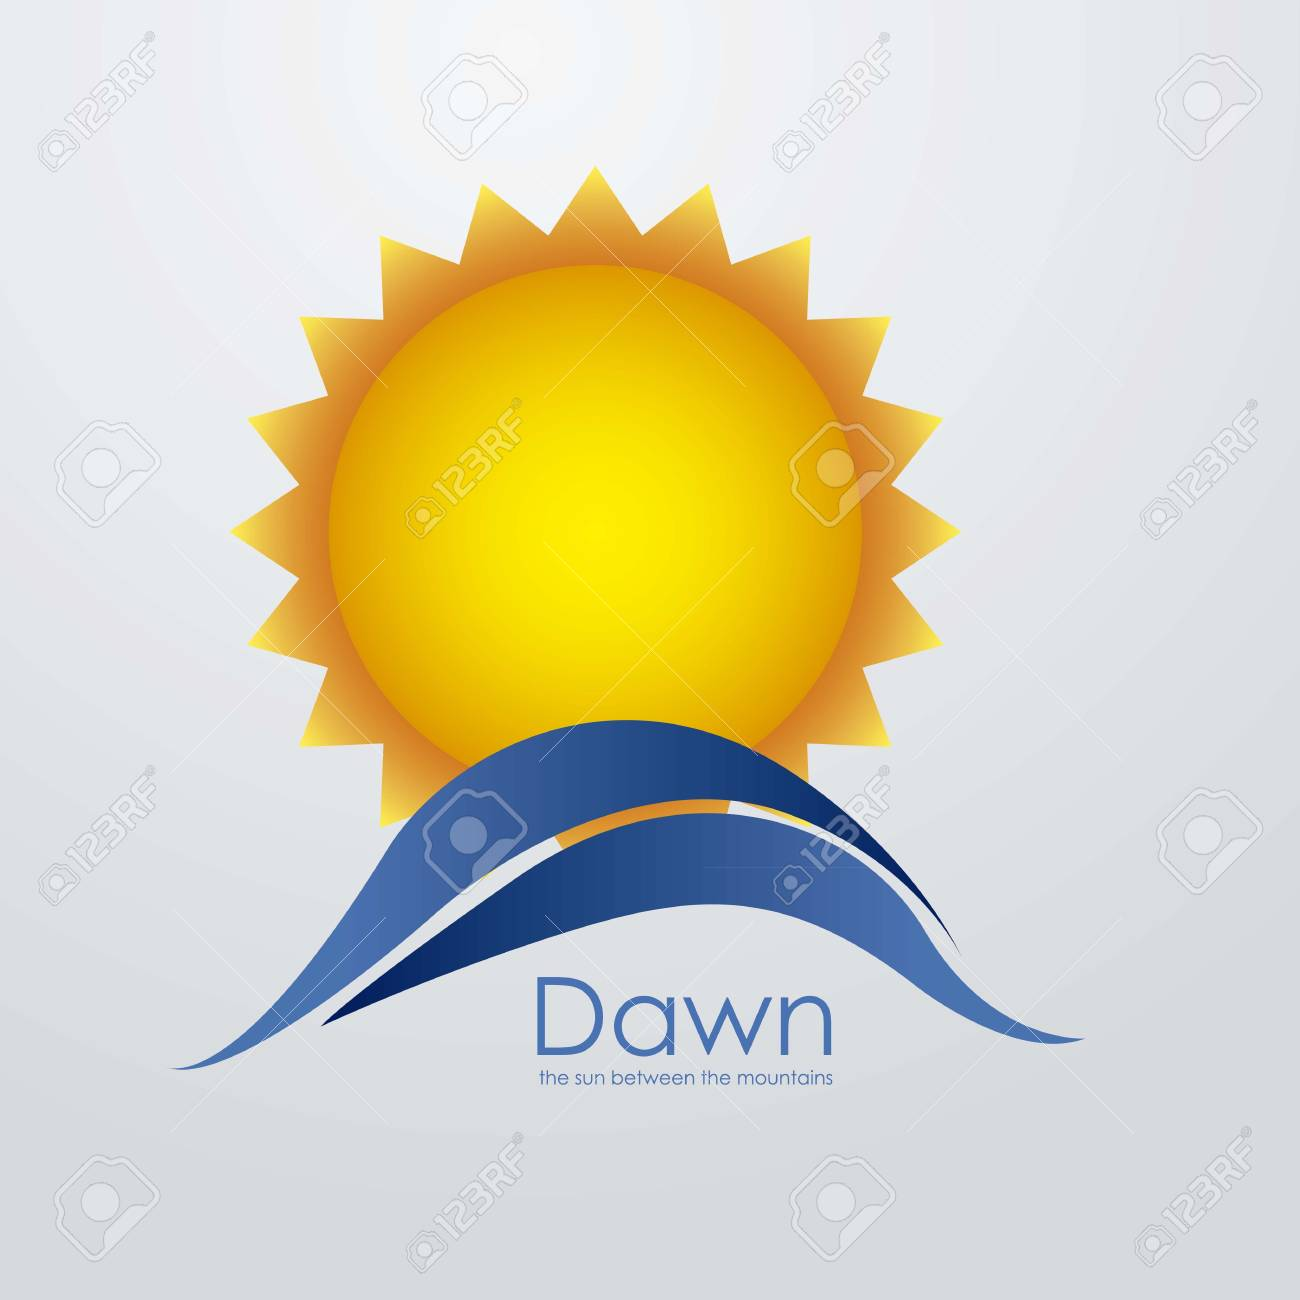 Illustration of icons sun icons of weather and seasons, vector illustration Stock Vector - 16818920